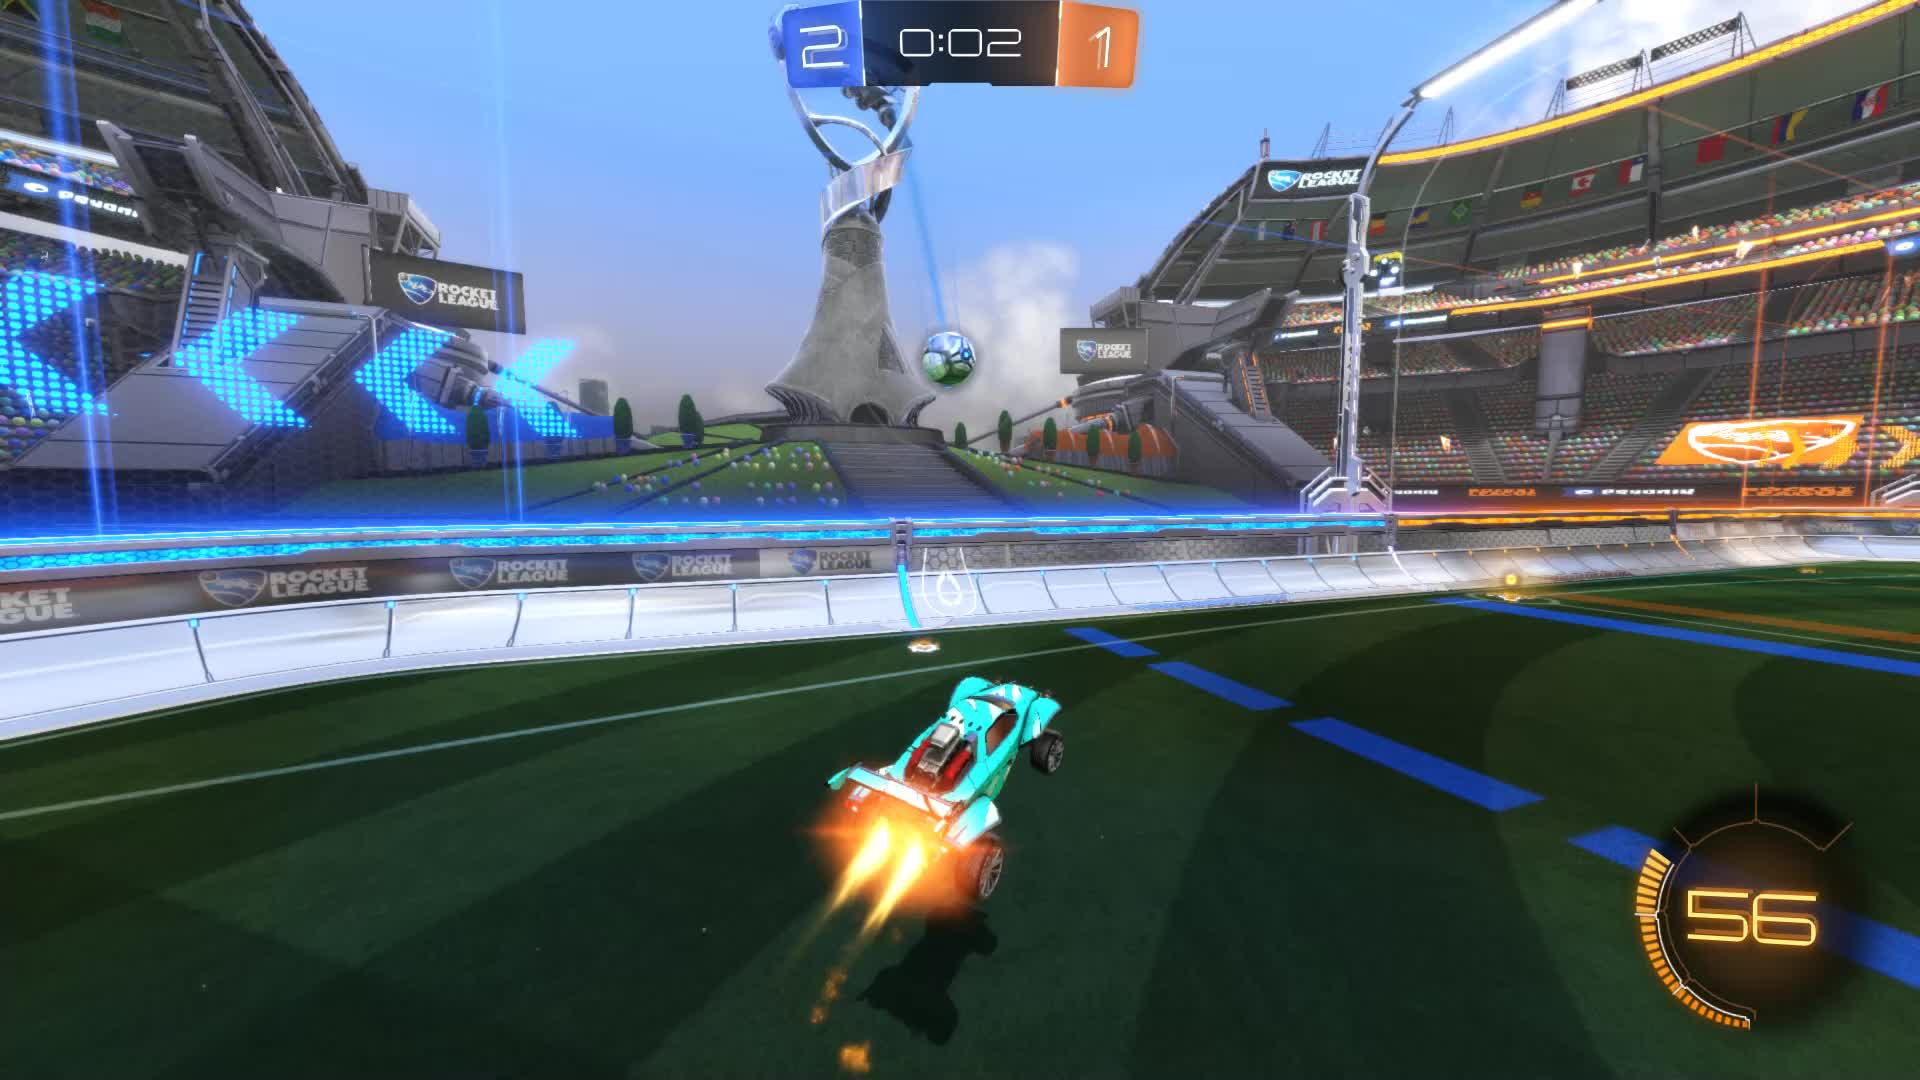 Baby Shark doo doo doo, Gif Your Game, GifYourGame, Goal, Rocket League, RocketLeague, Goal 4: Baby Shark doo doo doo GIFs